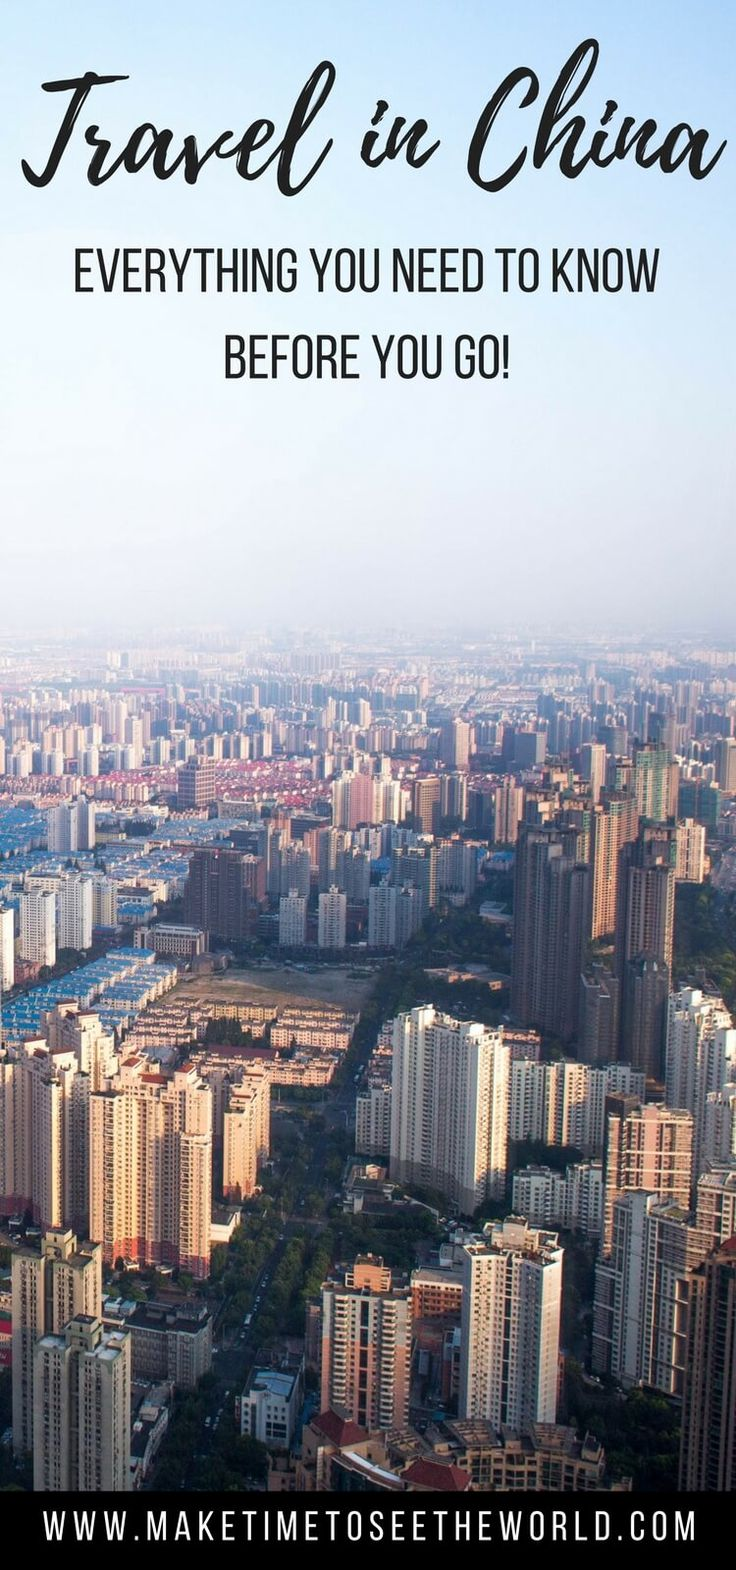 Travel in China - Everything you need to know before you go  ********************************************** Travel in China | China Travel Tips | Need to Know China | First Visit to China | Know Before You Go China | Travel to China | How to get around China | Major Cities in China | Money in China | Capital of China | Where to visit in China | Places to go in China | Where is China | China Travel Destinations | Travel to China